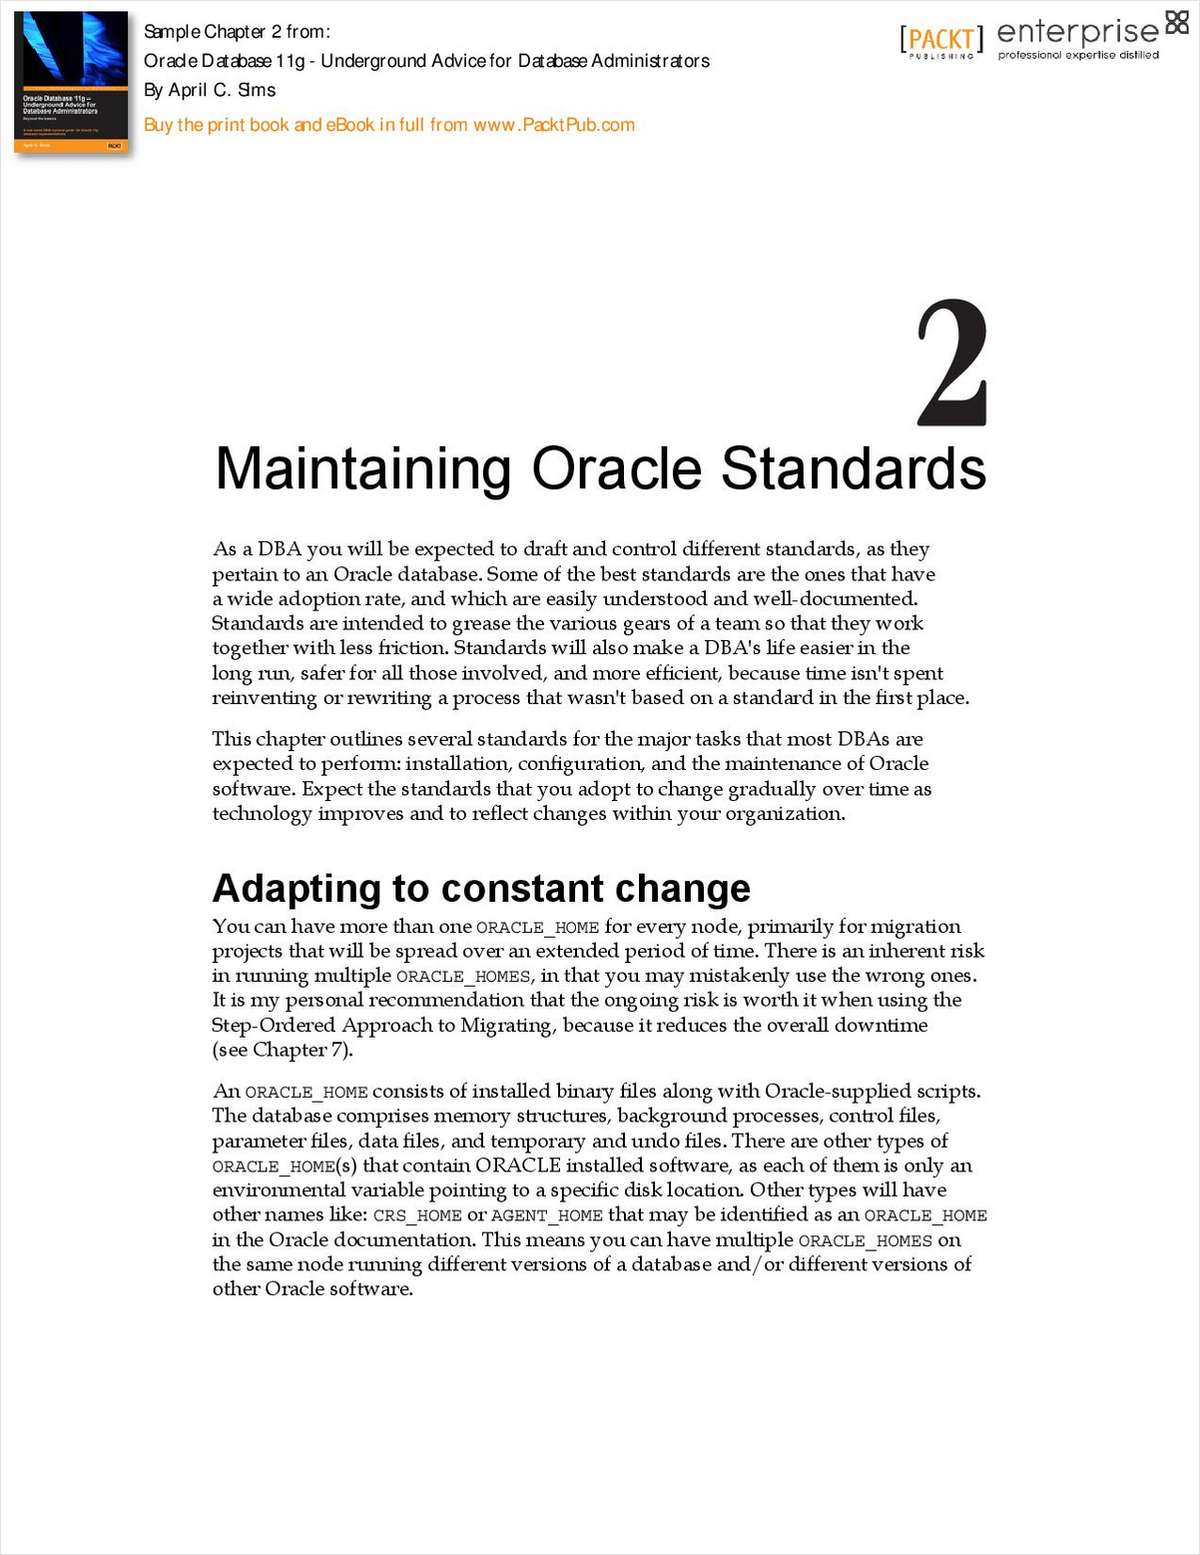 Maintaining Oracle Standards – Free Chapter from Oracle Database 11g - Underground Advice for Database Administrators